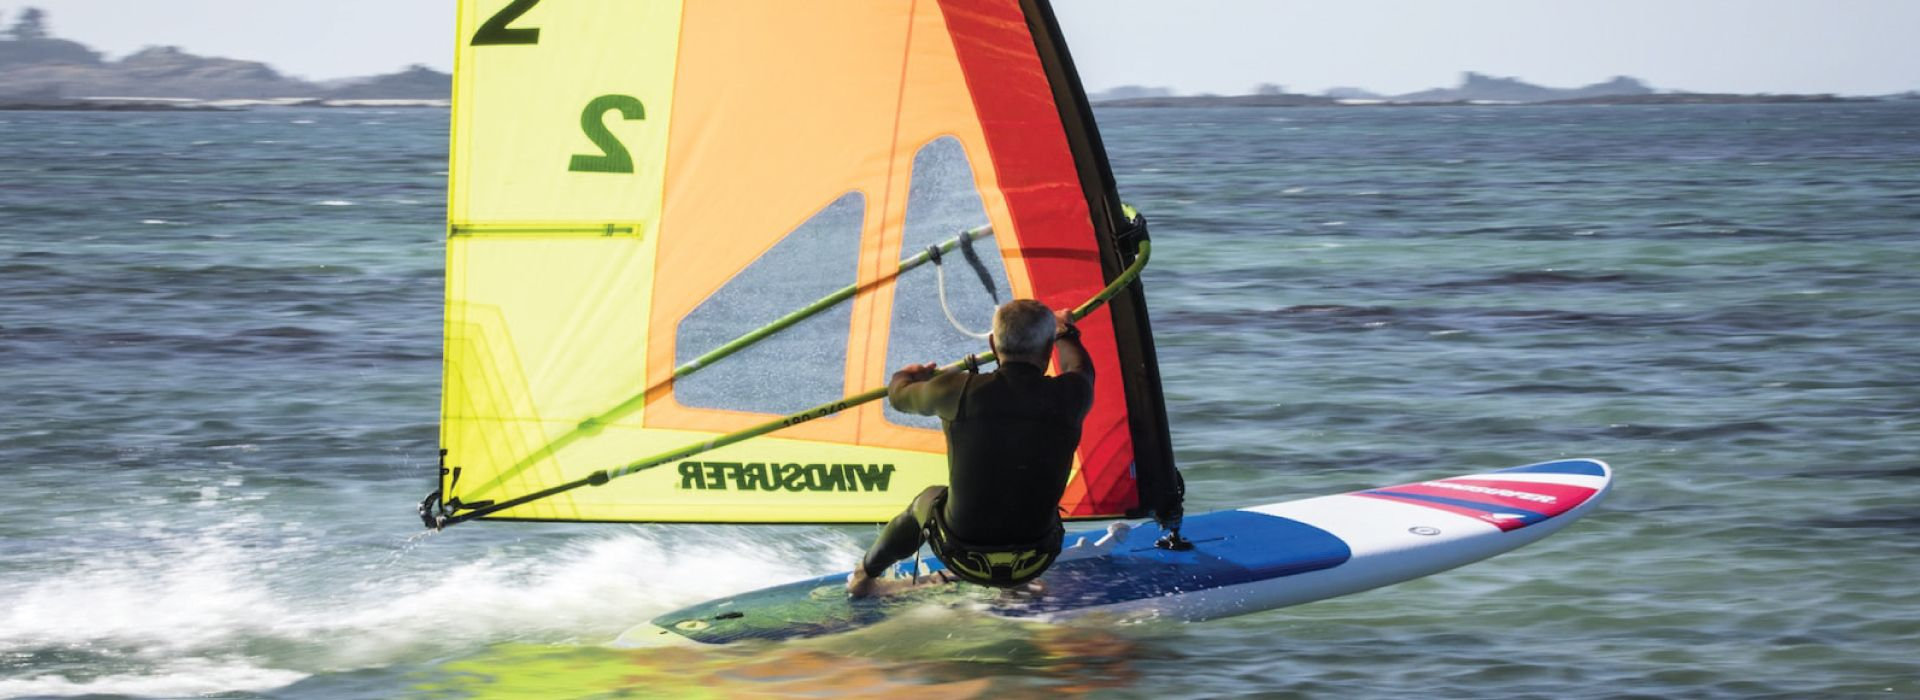 Windsurfer - Action Fun Lorient